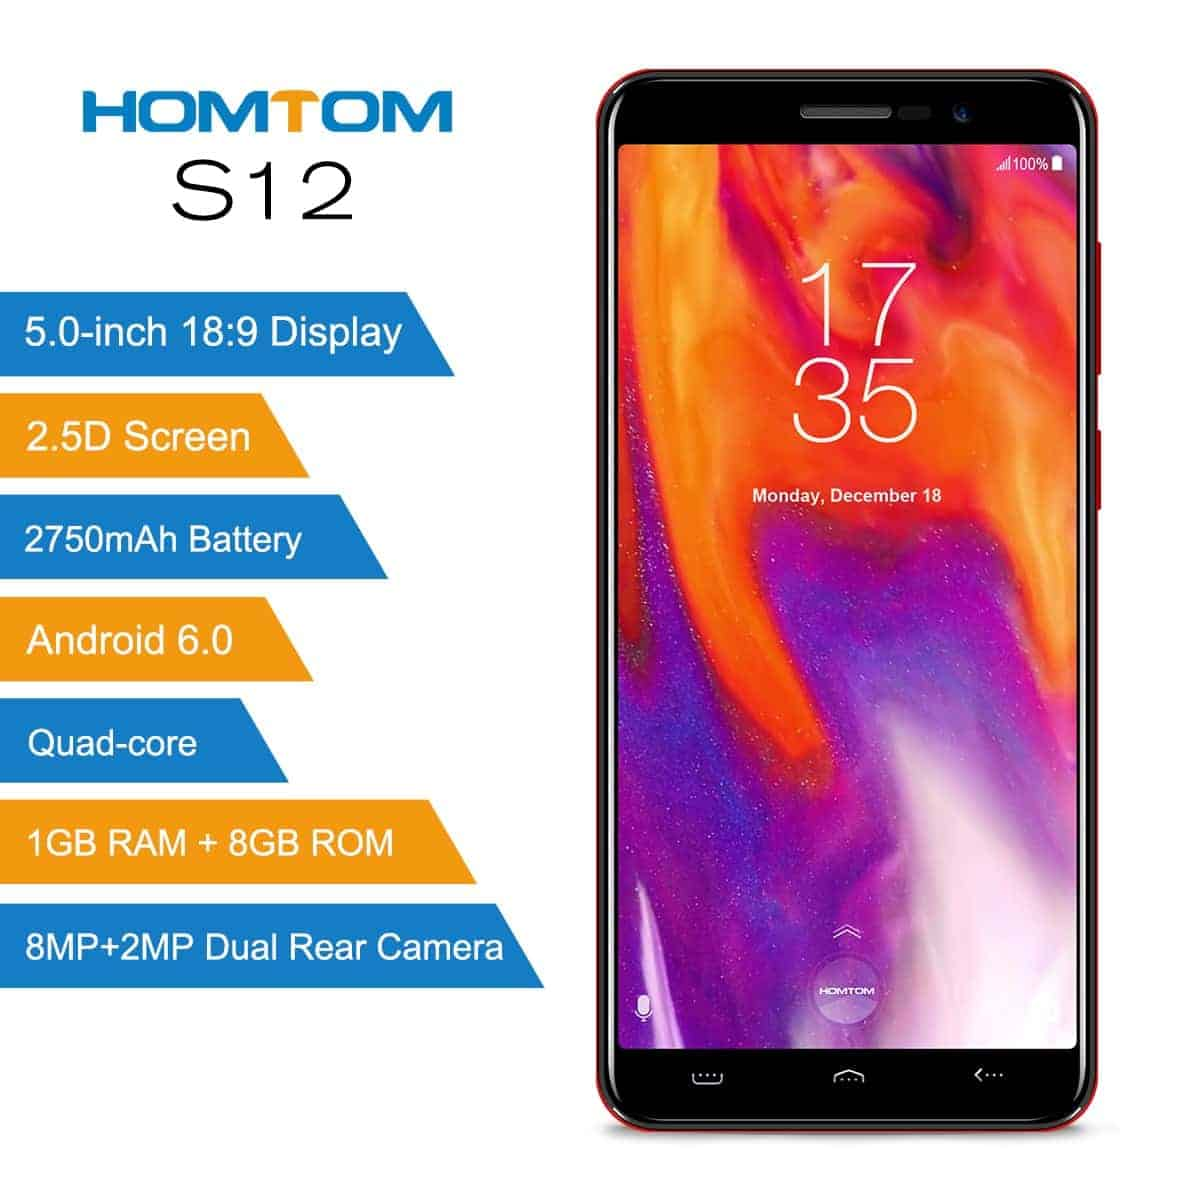 HOMTOM S12 official image 2